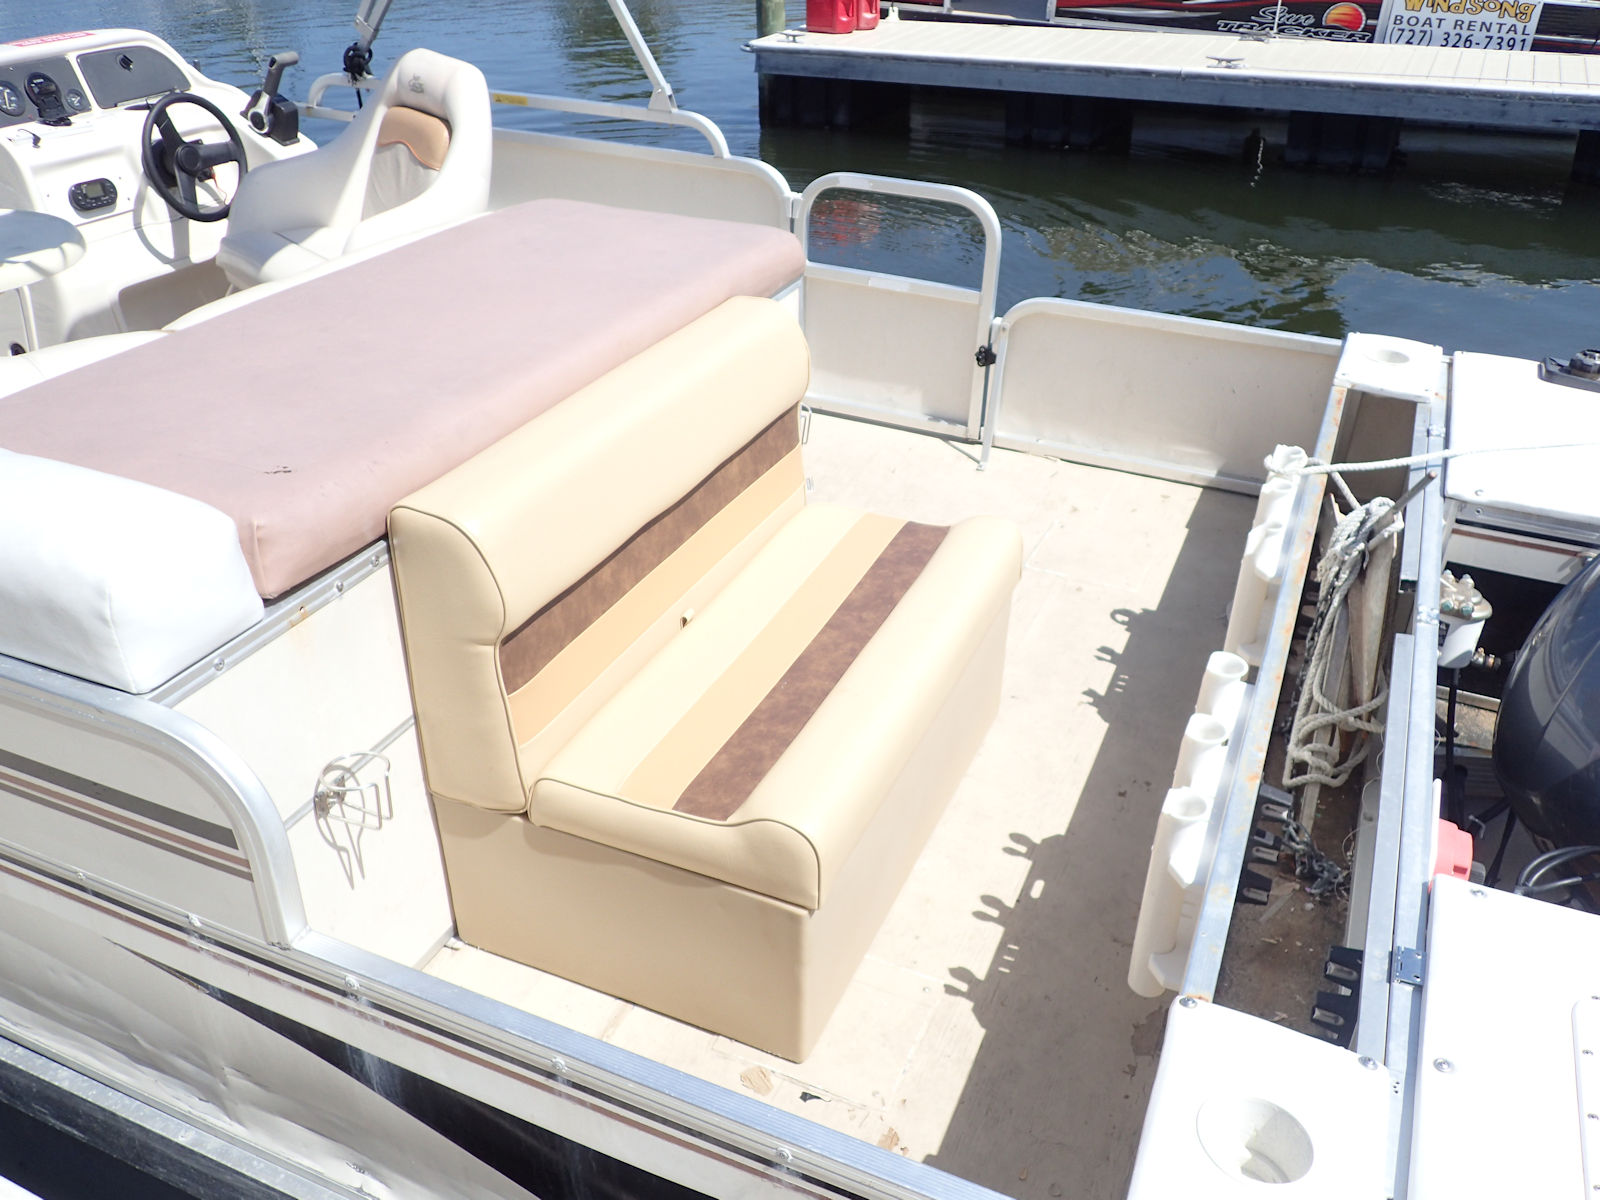 22 foot fishing pontoon boat rental picture gallery for Fishing boat rental